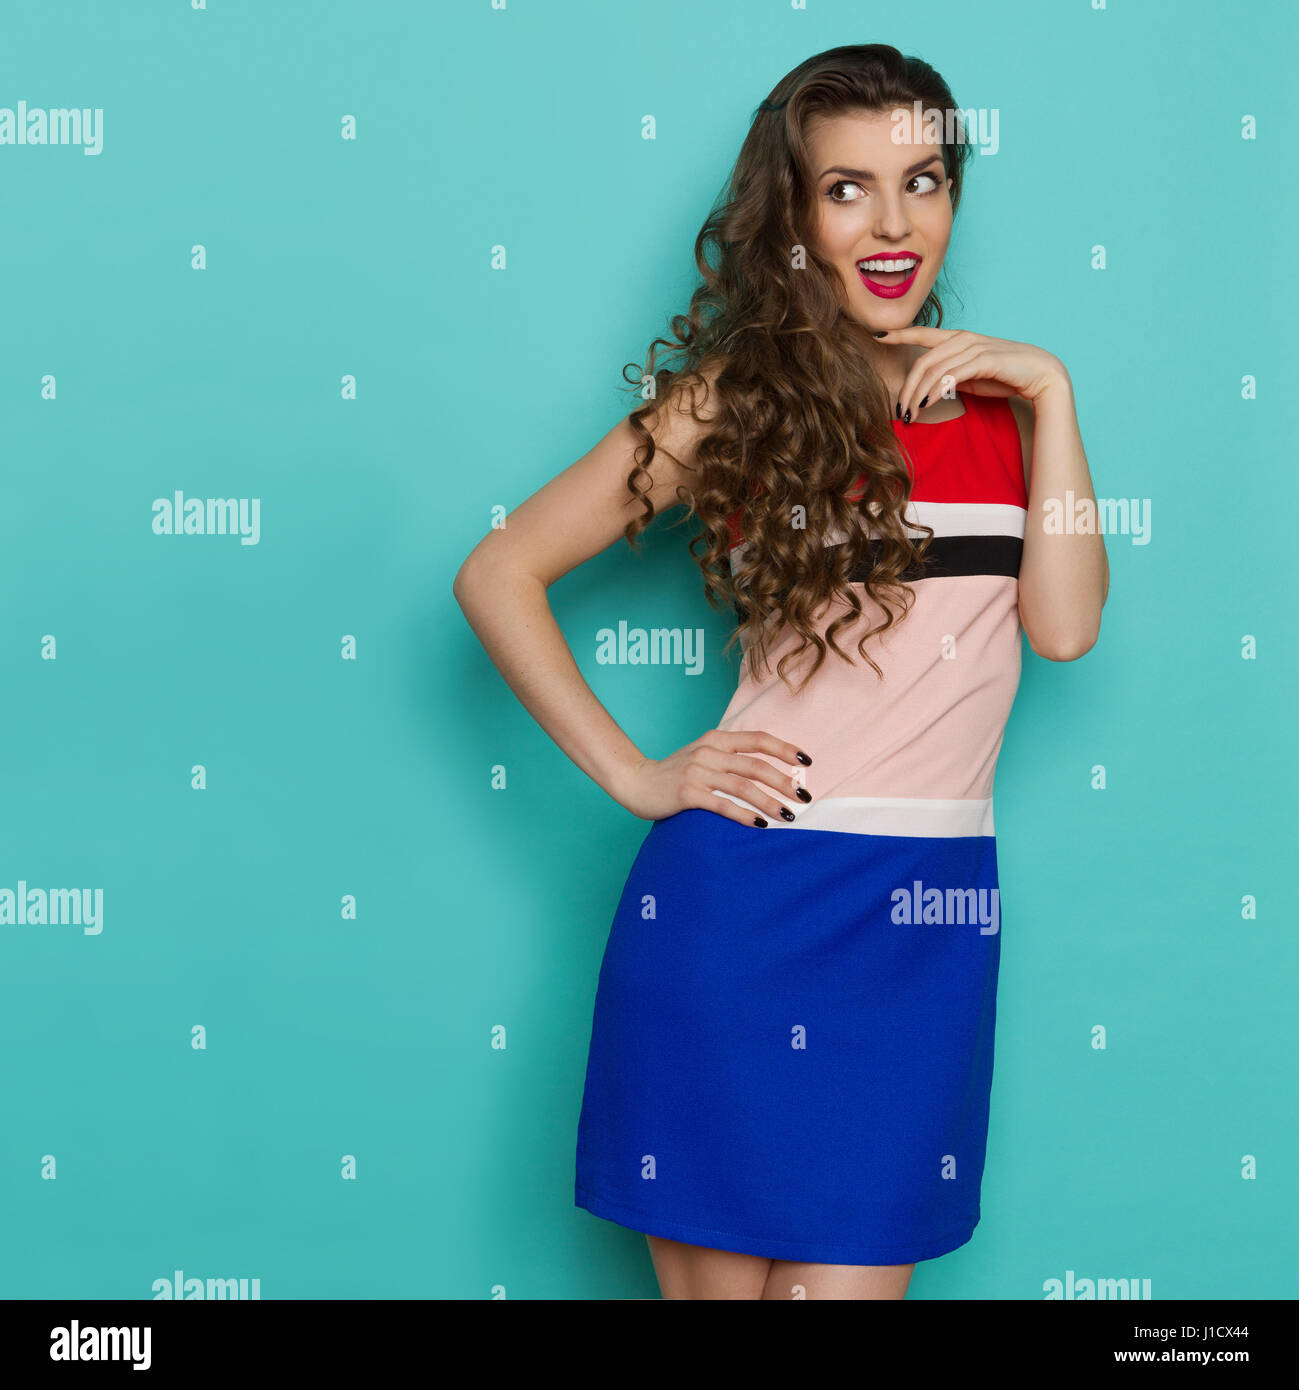 Ecstatic beautiful young woman in colorful mini dress is holding hand on hip and looking away at copy space. Three - Stock Image